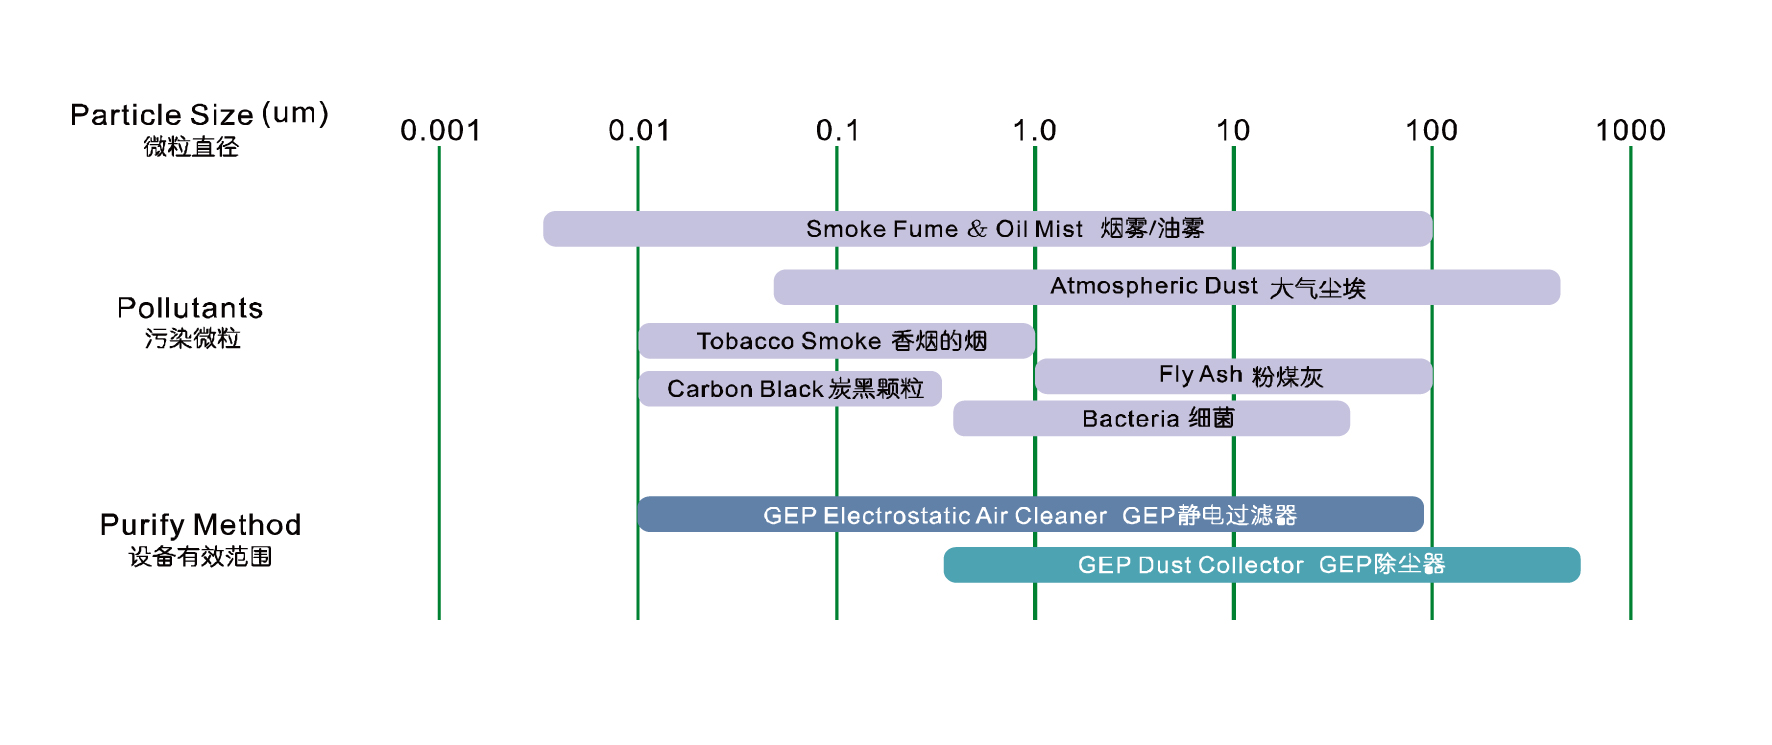 PARTICLE RANGE OF GEP'S